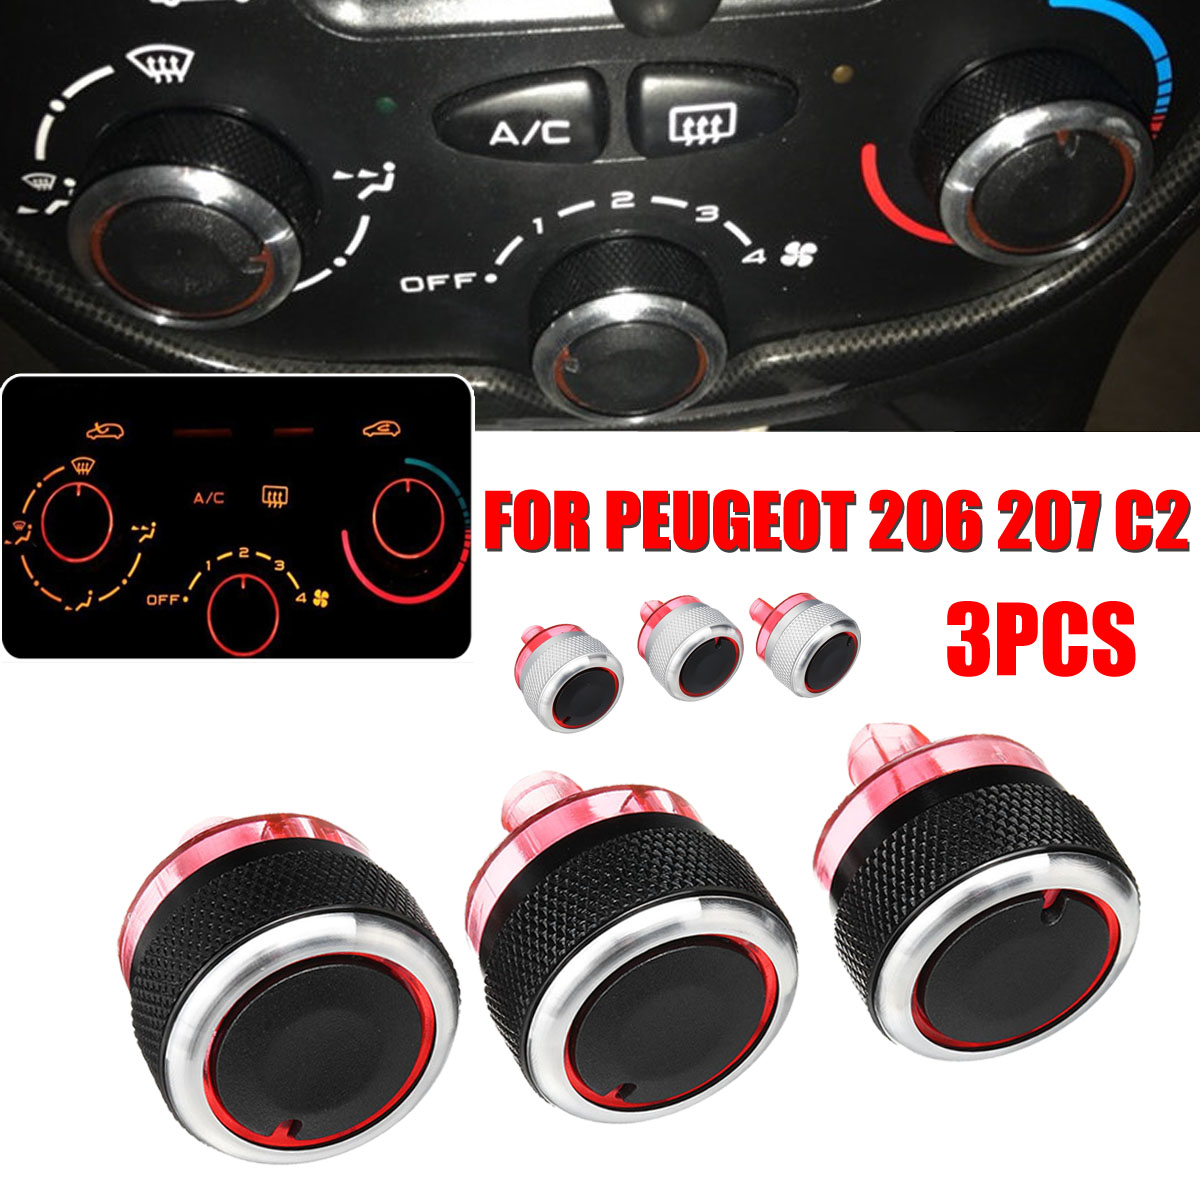 Voor Peugeot 206 207 C2 Switch Knoppen A/C Heater Controle Knop Airconditioning Knop Auto Accessoires